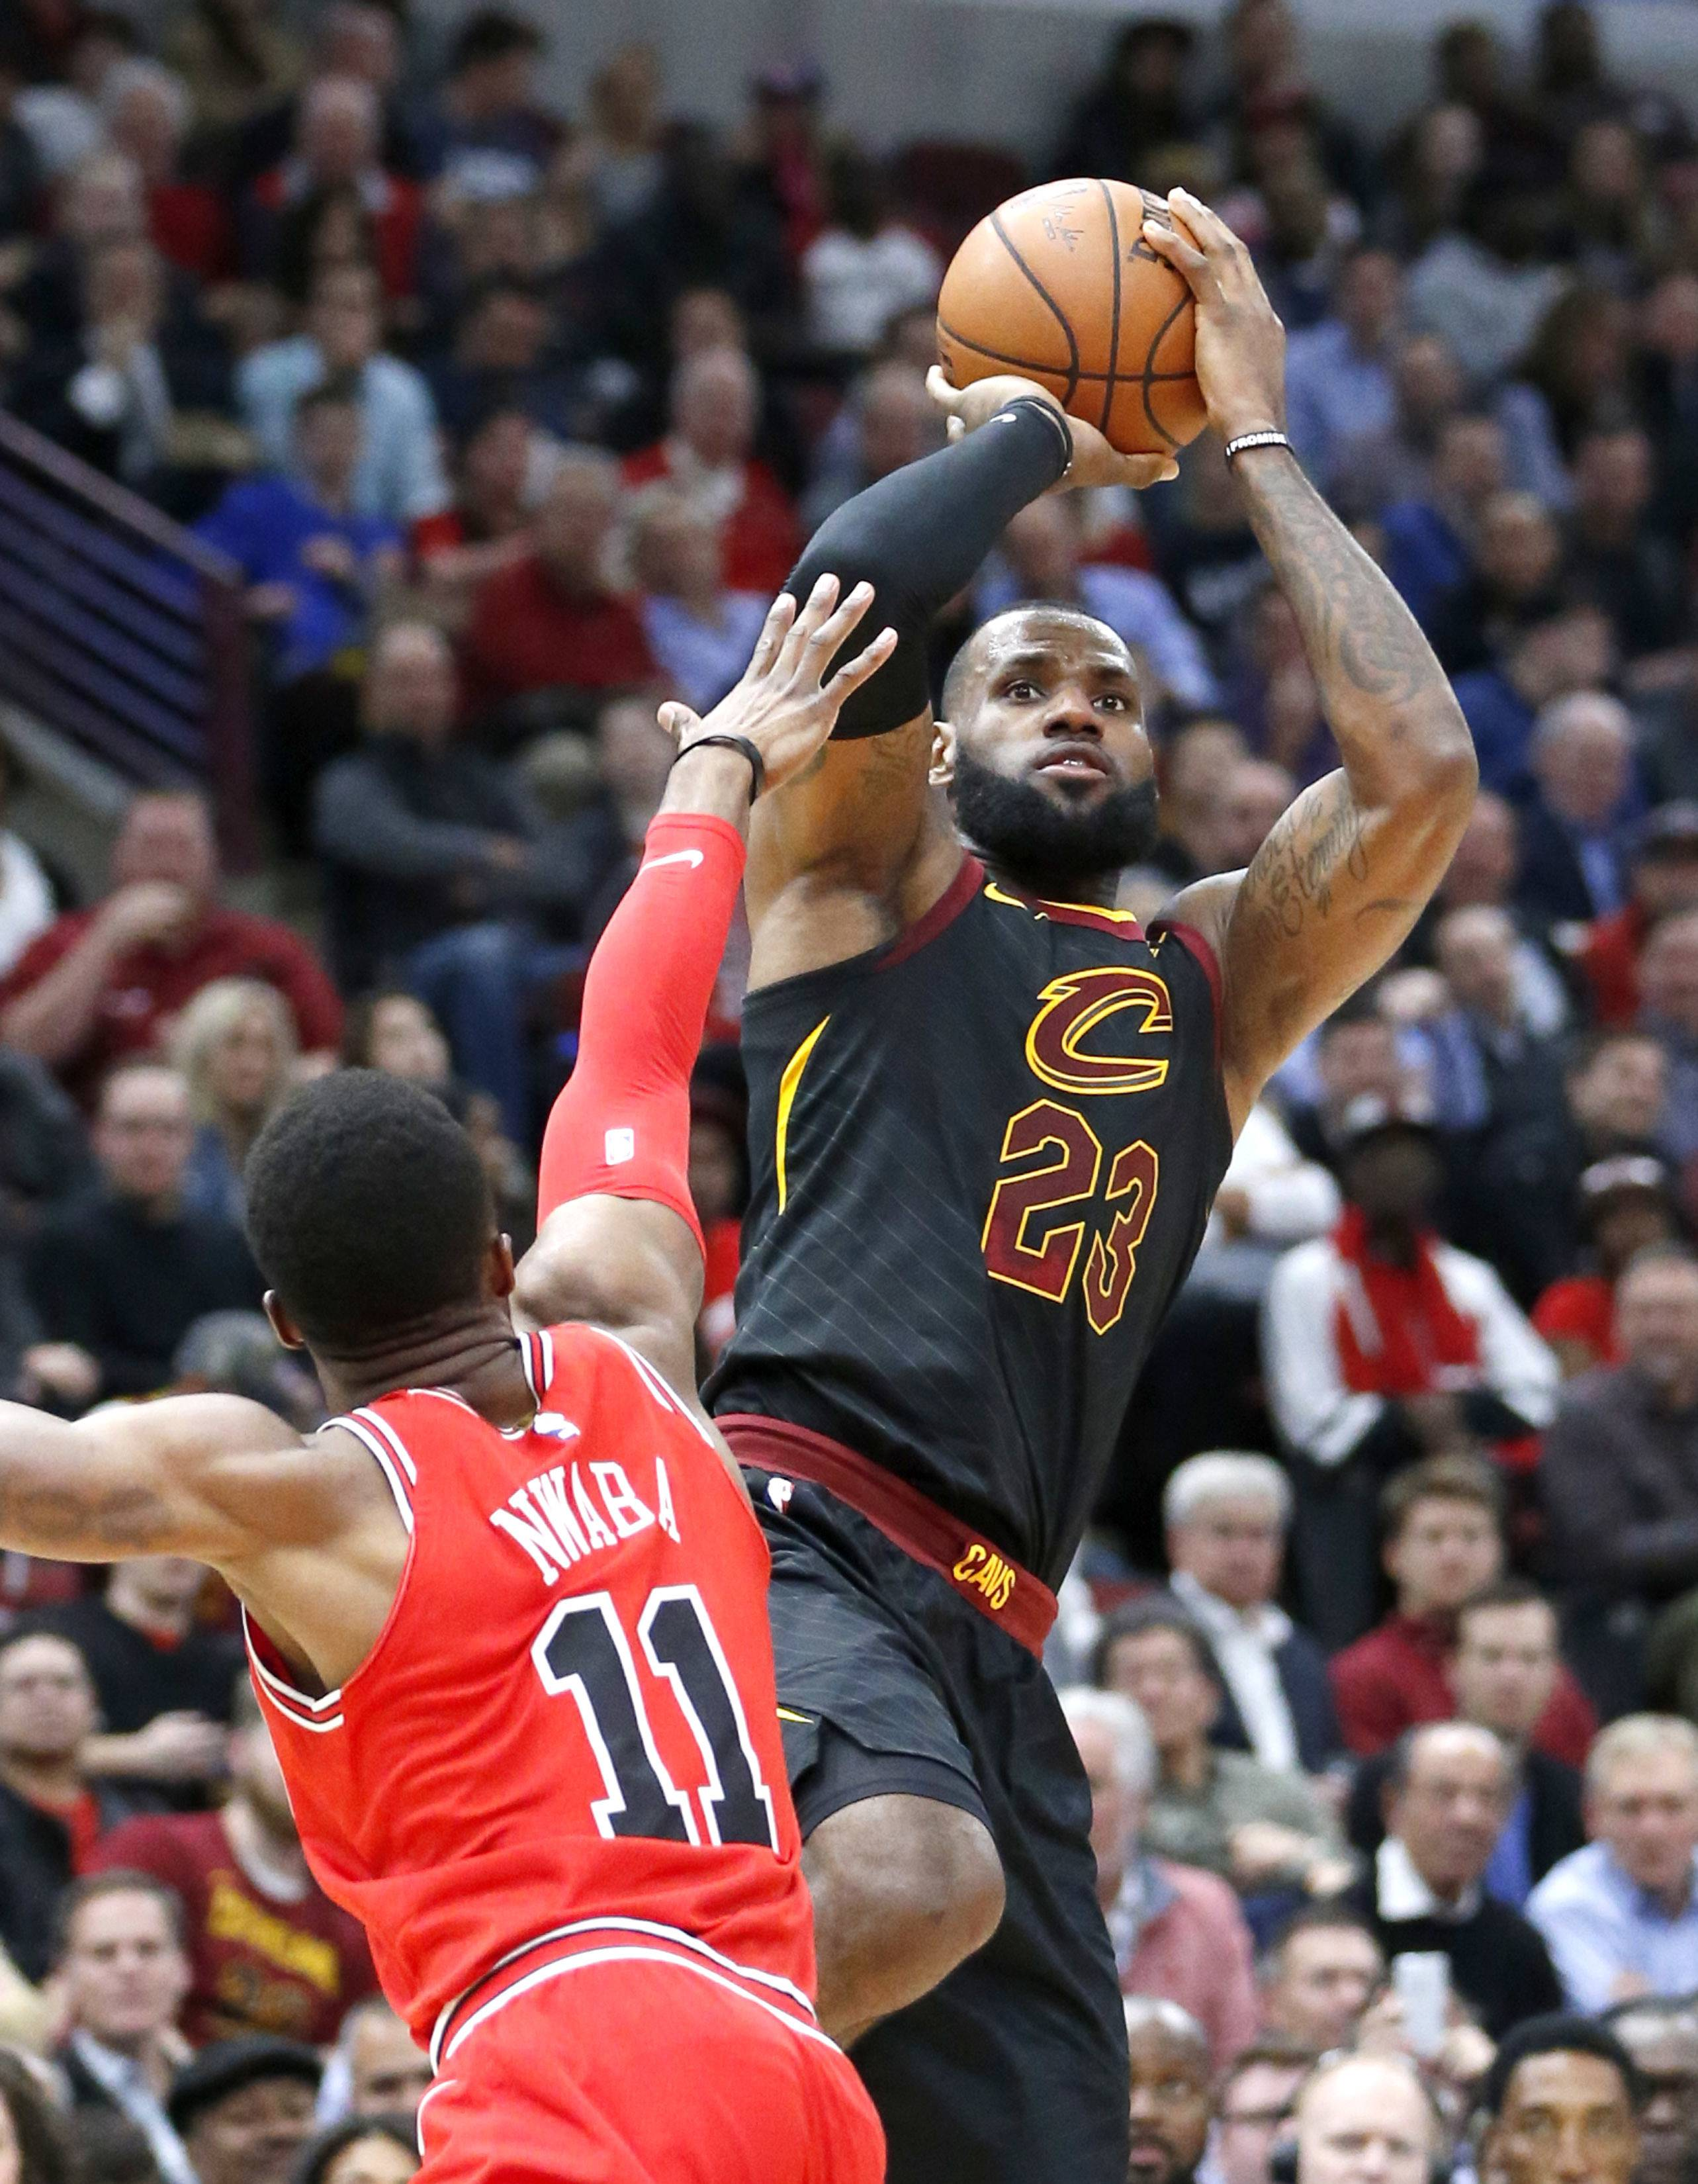 Wade says no extra motivation as Cavs crush Chicago Bulls